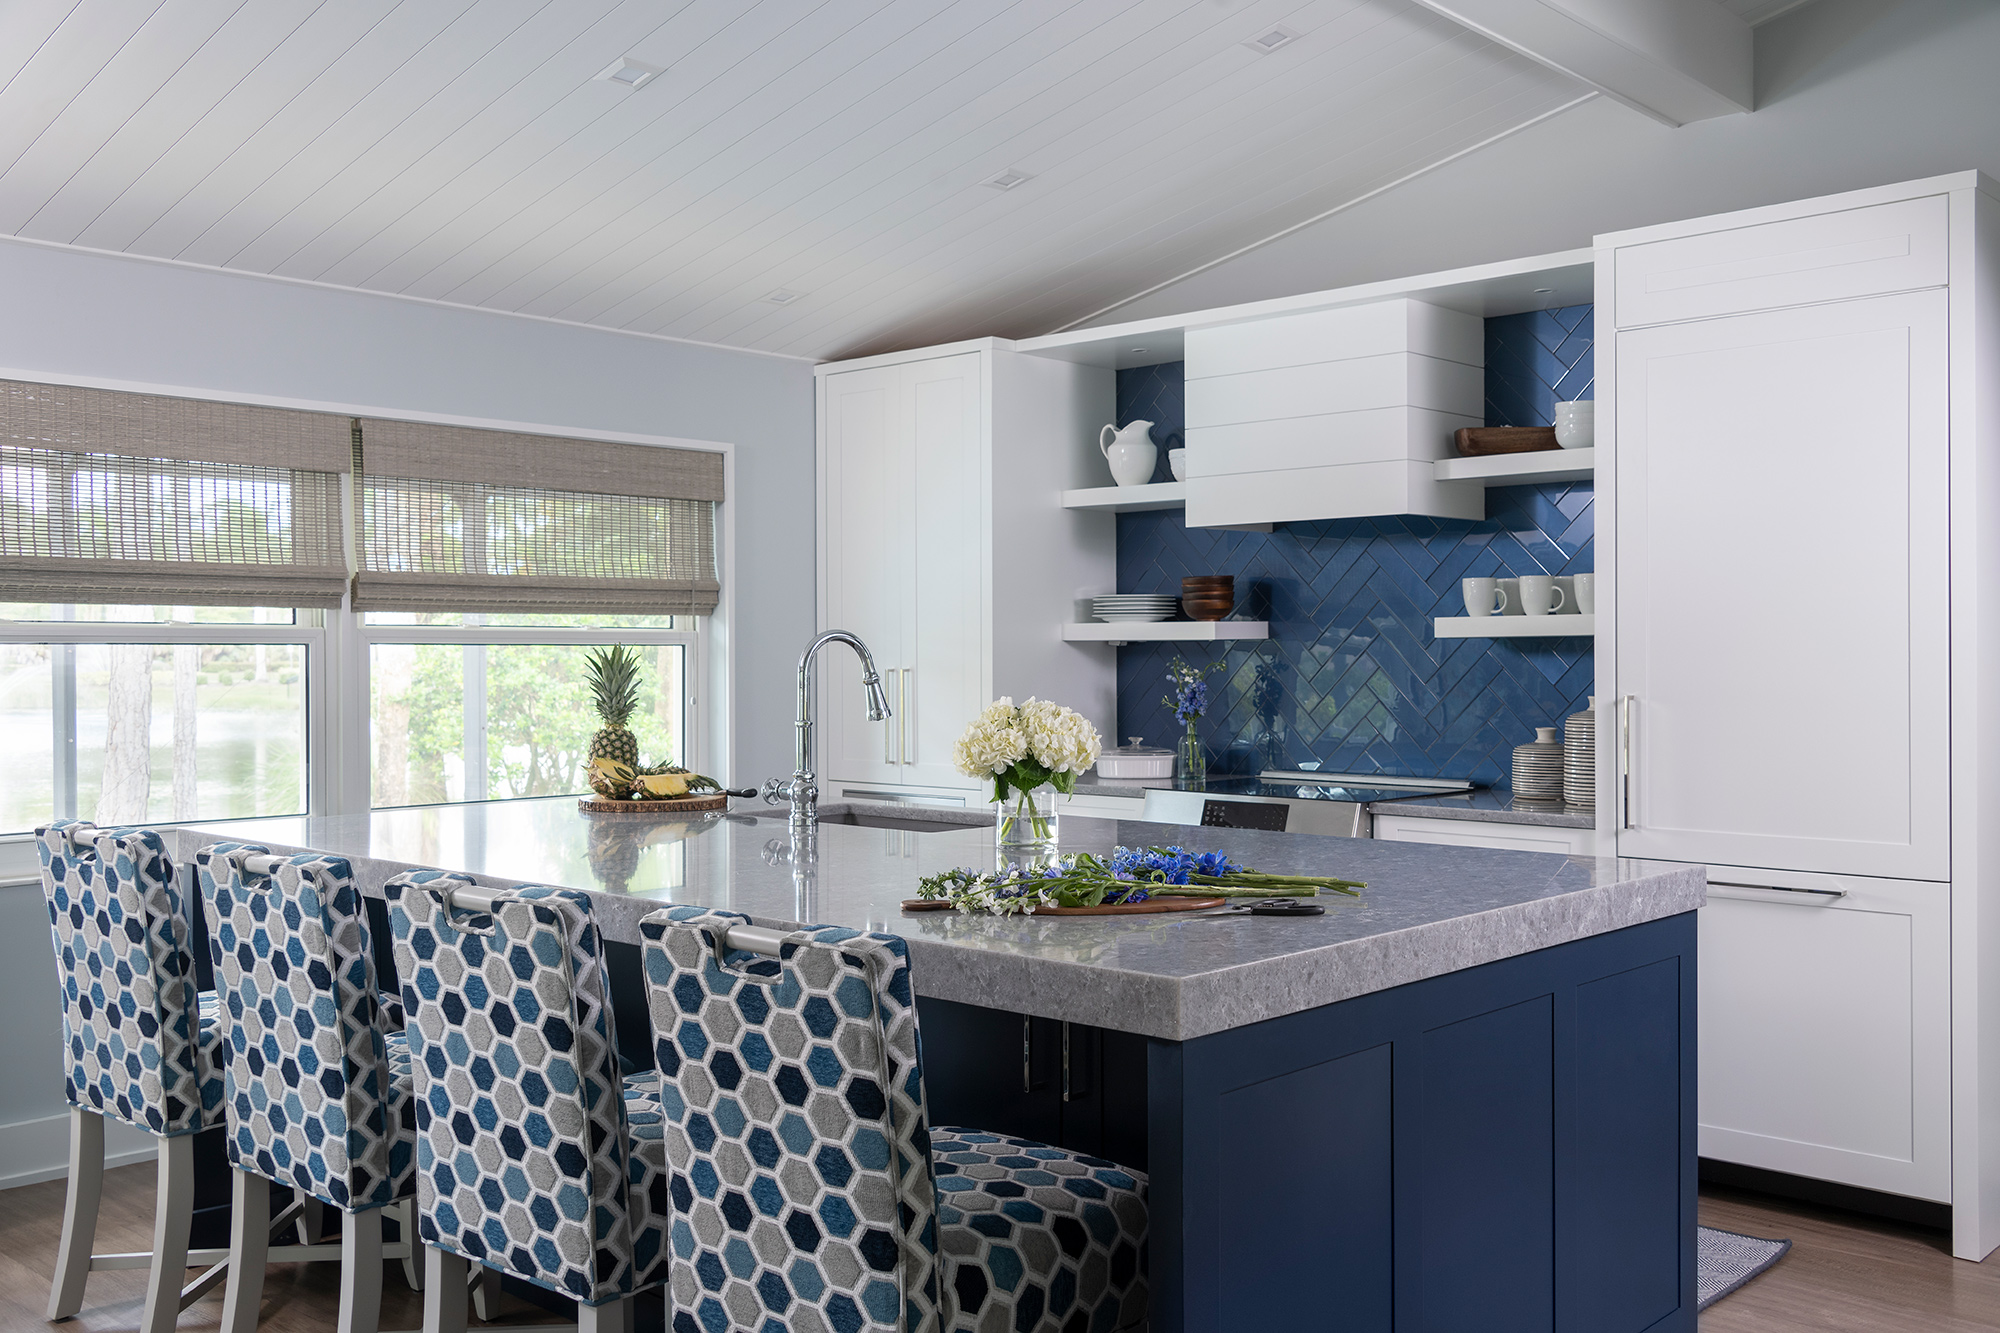 Family Room Transformed to Kitchen After